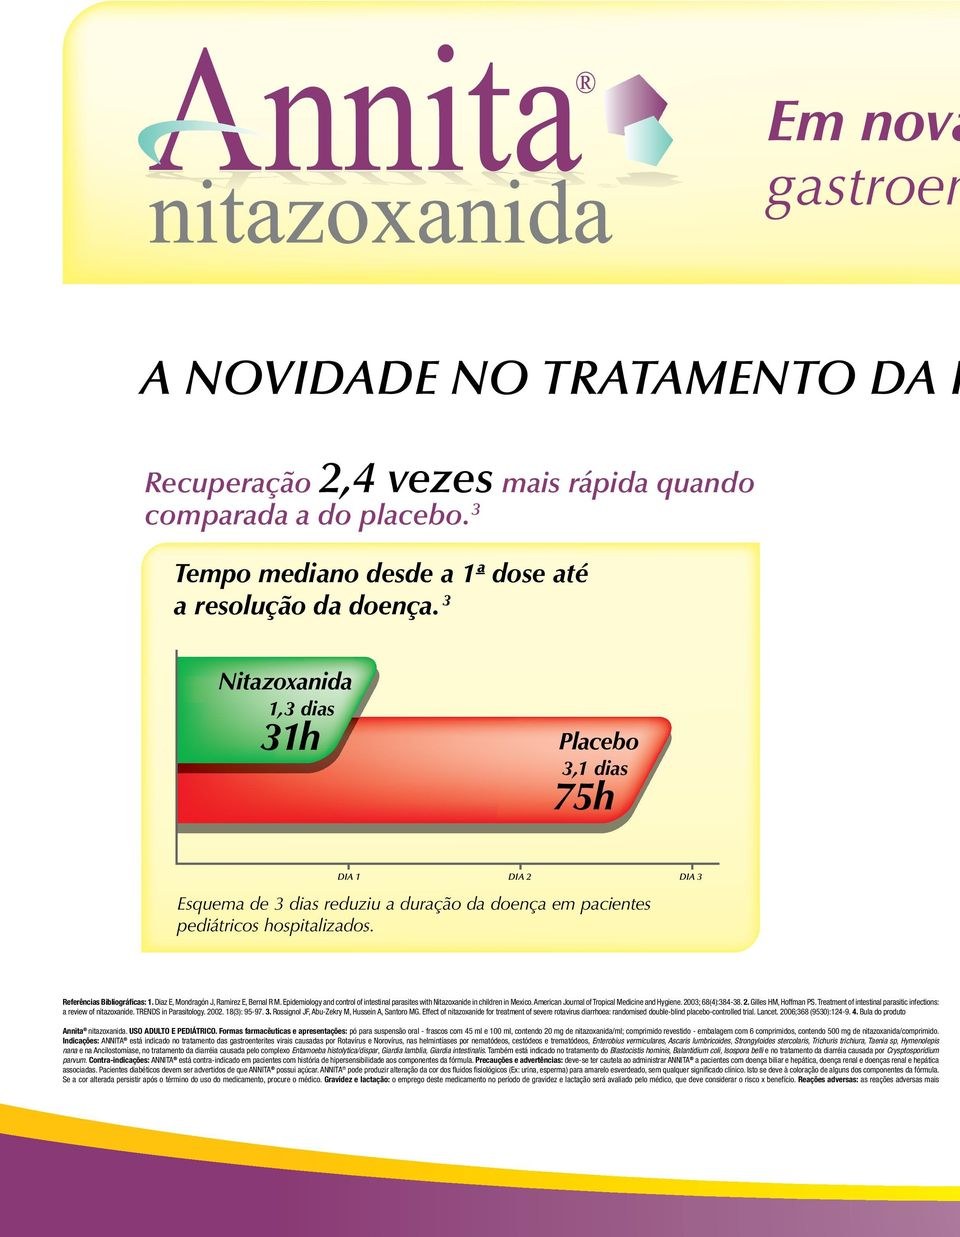 Diaz E, Mondragón J, Ramirez E, Bernal R M. Epidemiology and control of intestinal parasites with Nitazoxanide in children in Mexico. American Journal of Tropical Medicine and Hygiene.